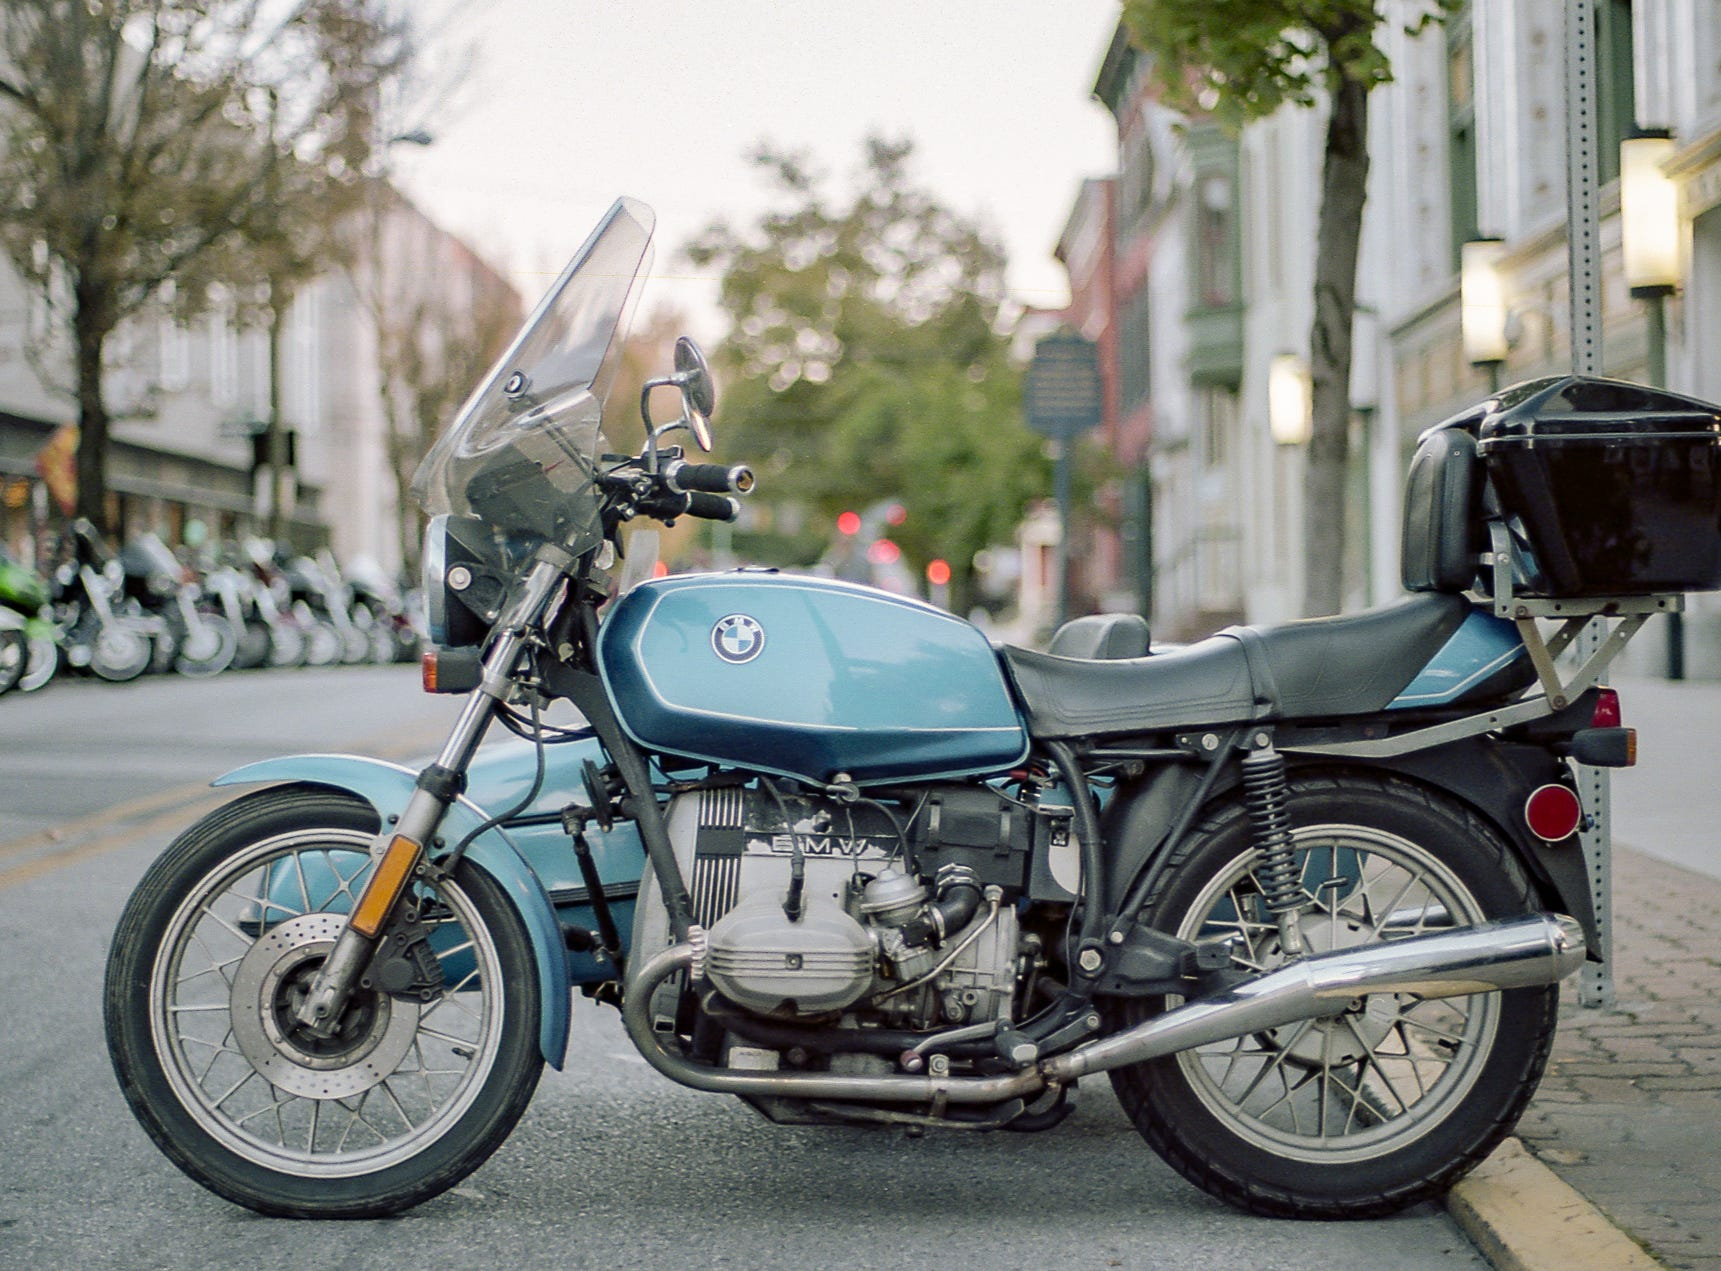 A BMW at the 2017 Bike Night in York. [Pentax KX] [Kodak Portra 160]